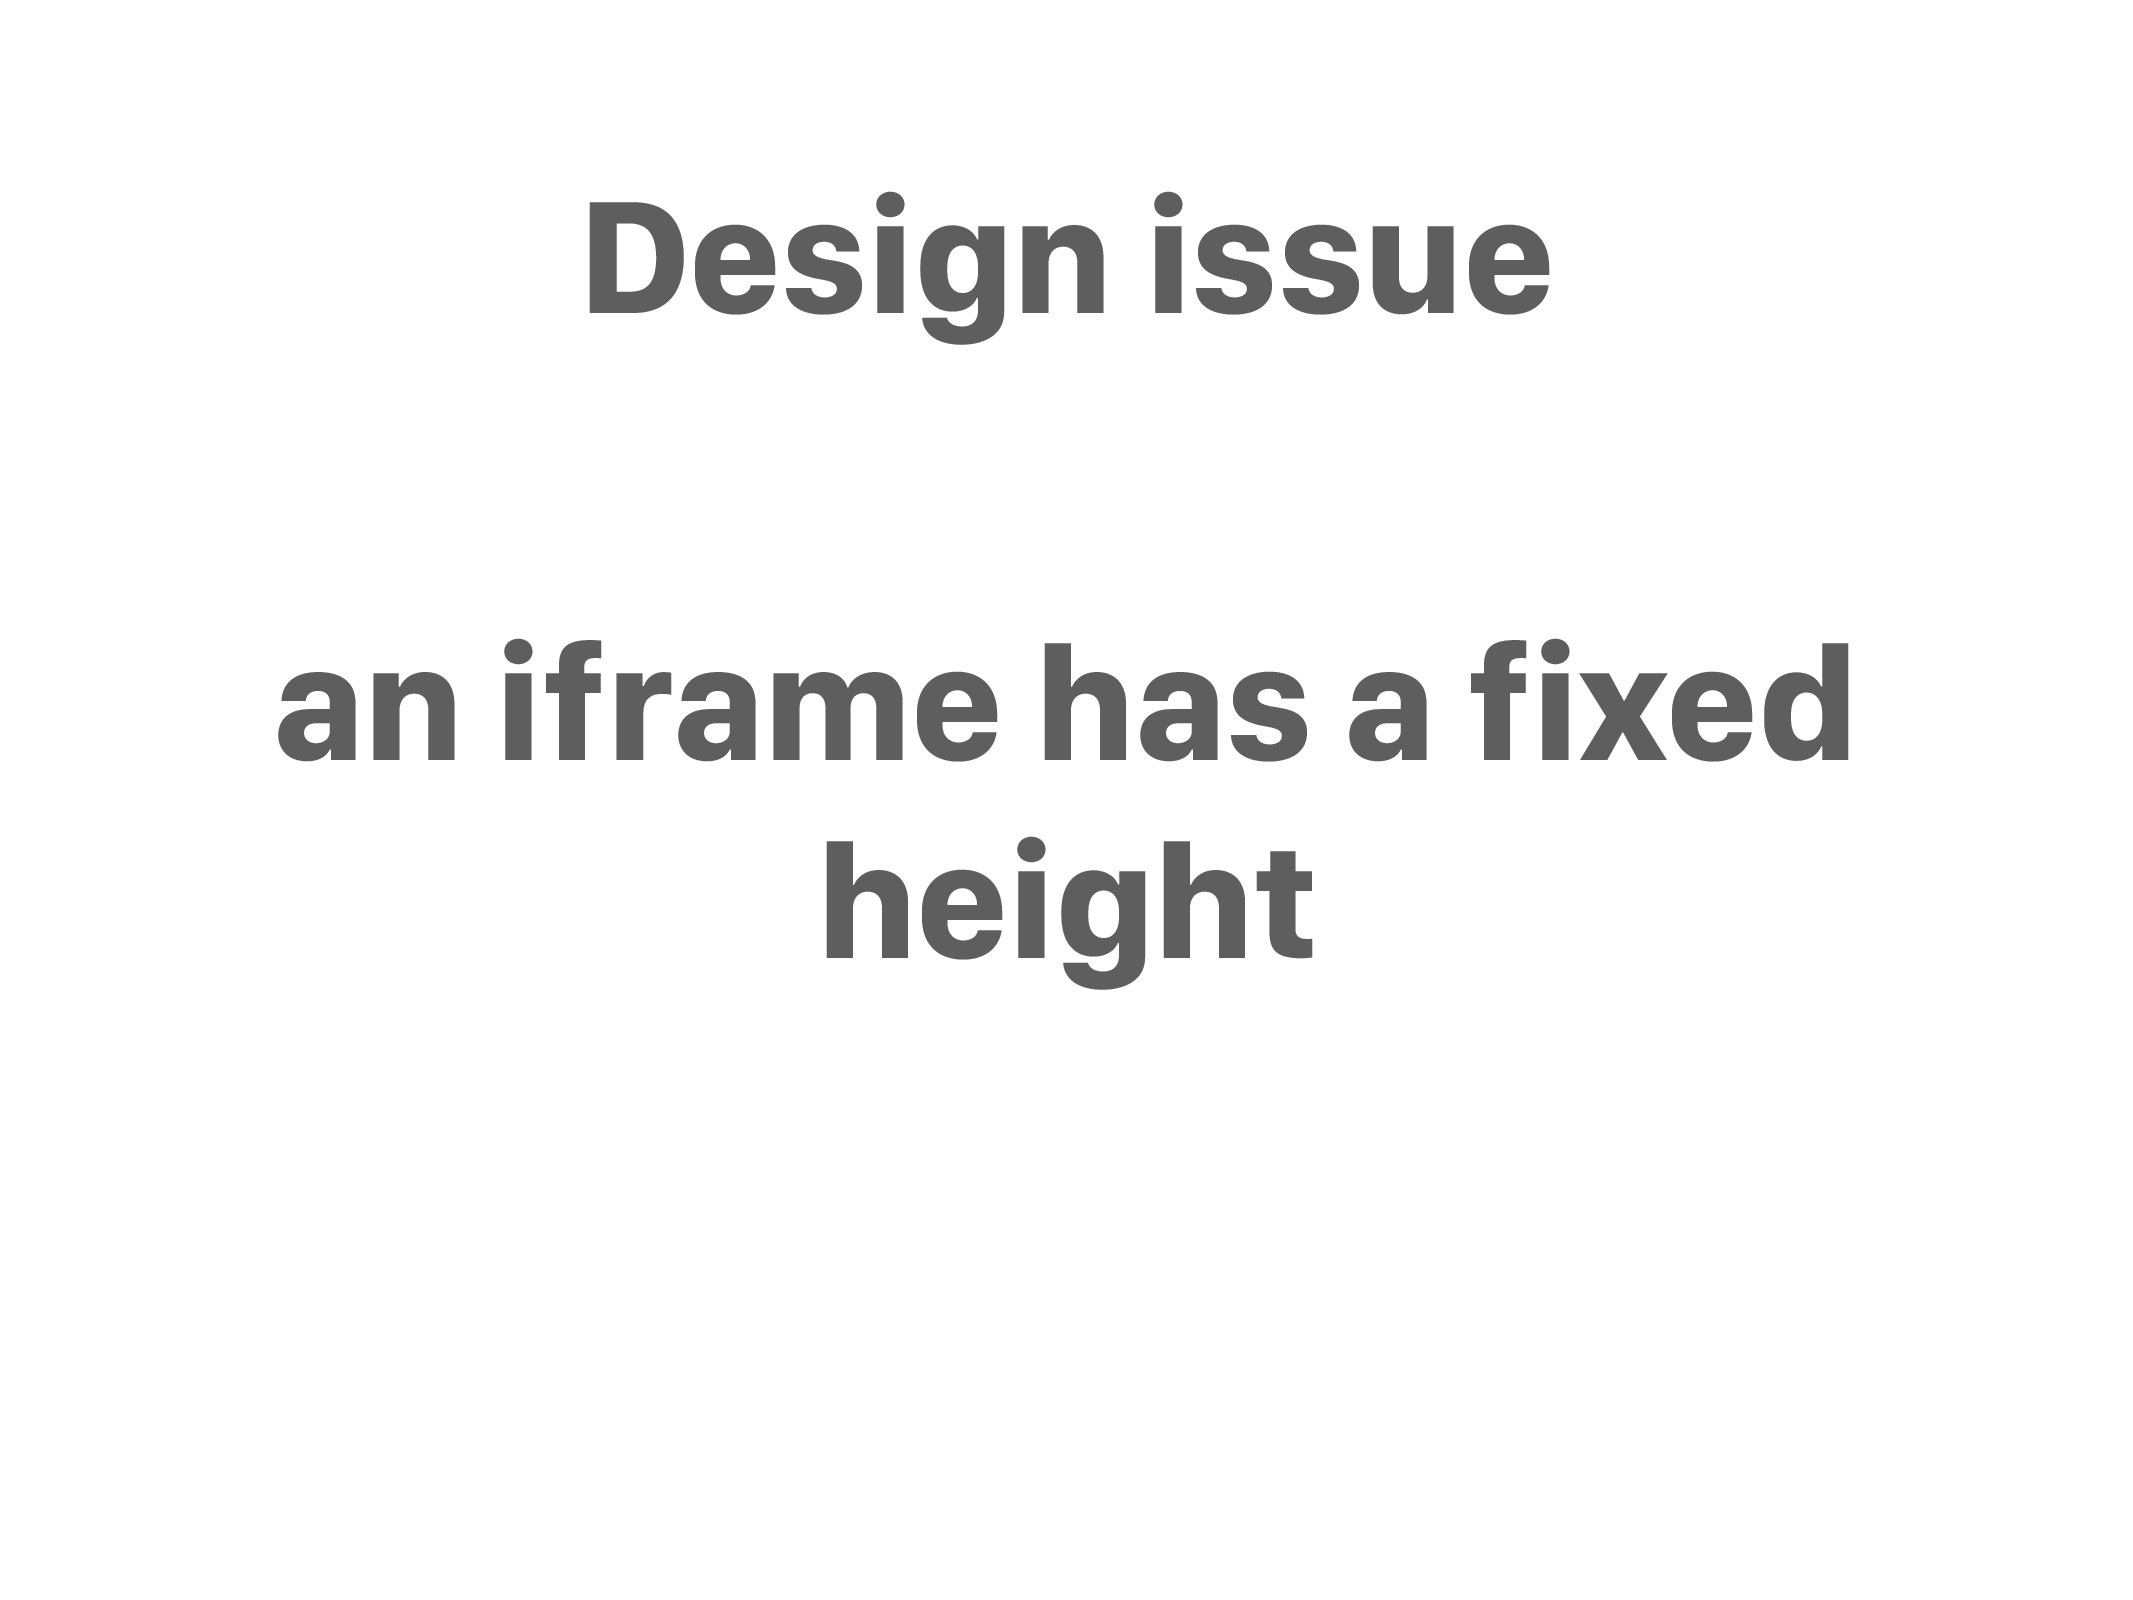 an iframe has a fixed height Design issue